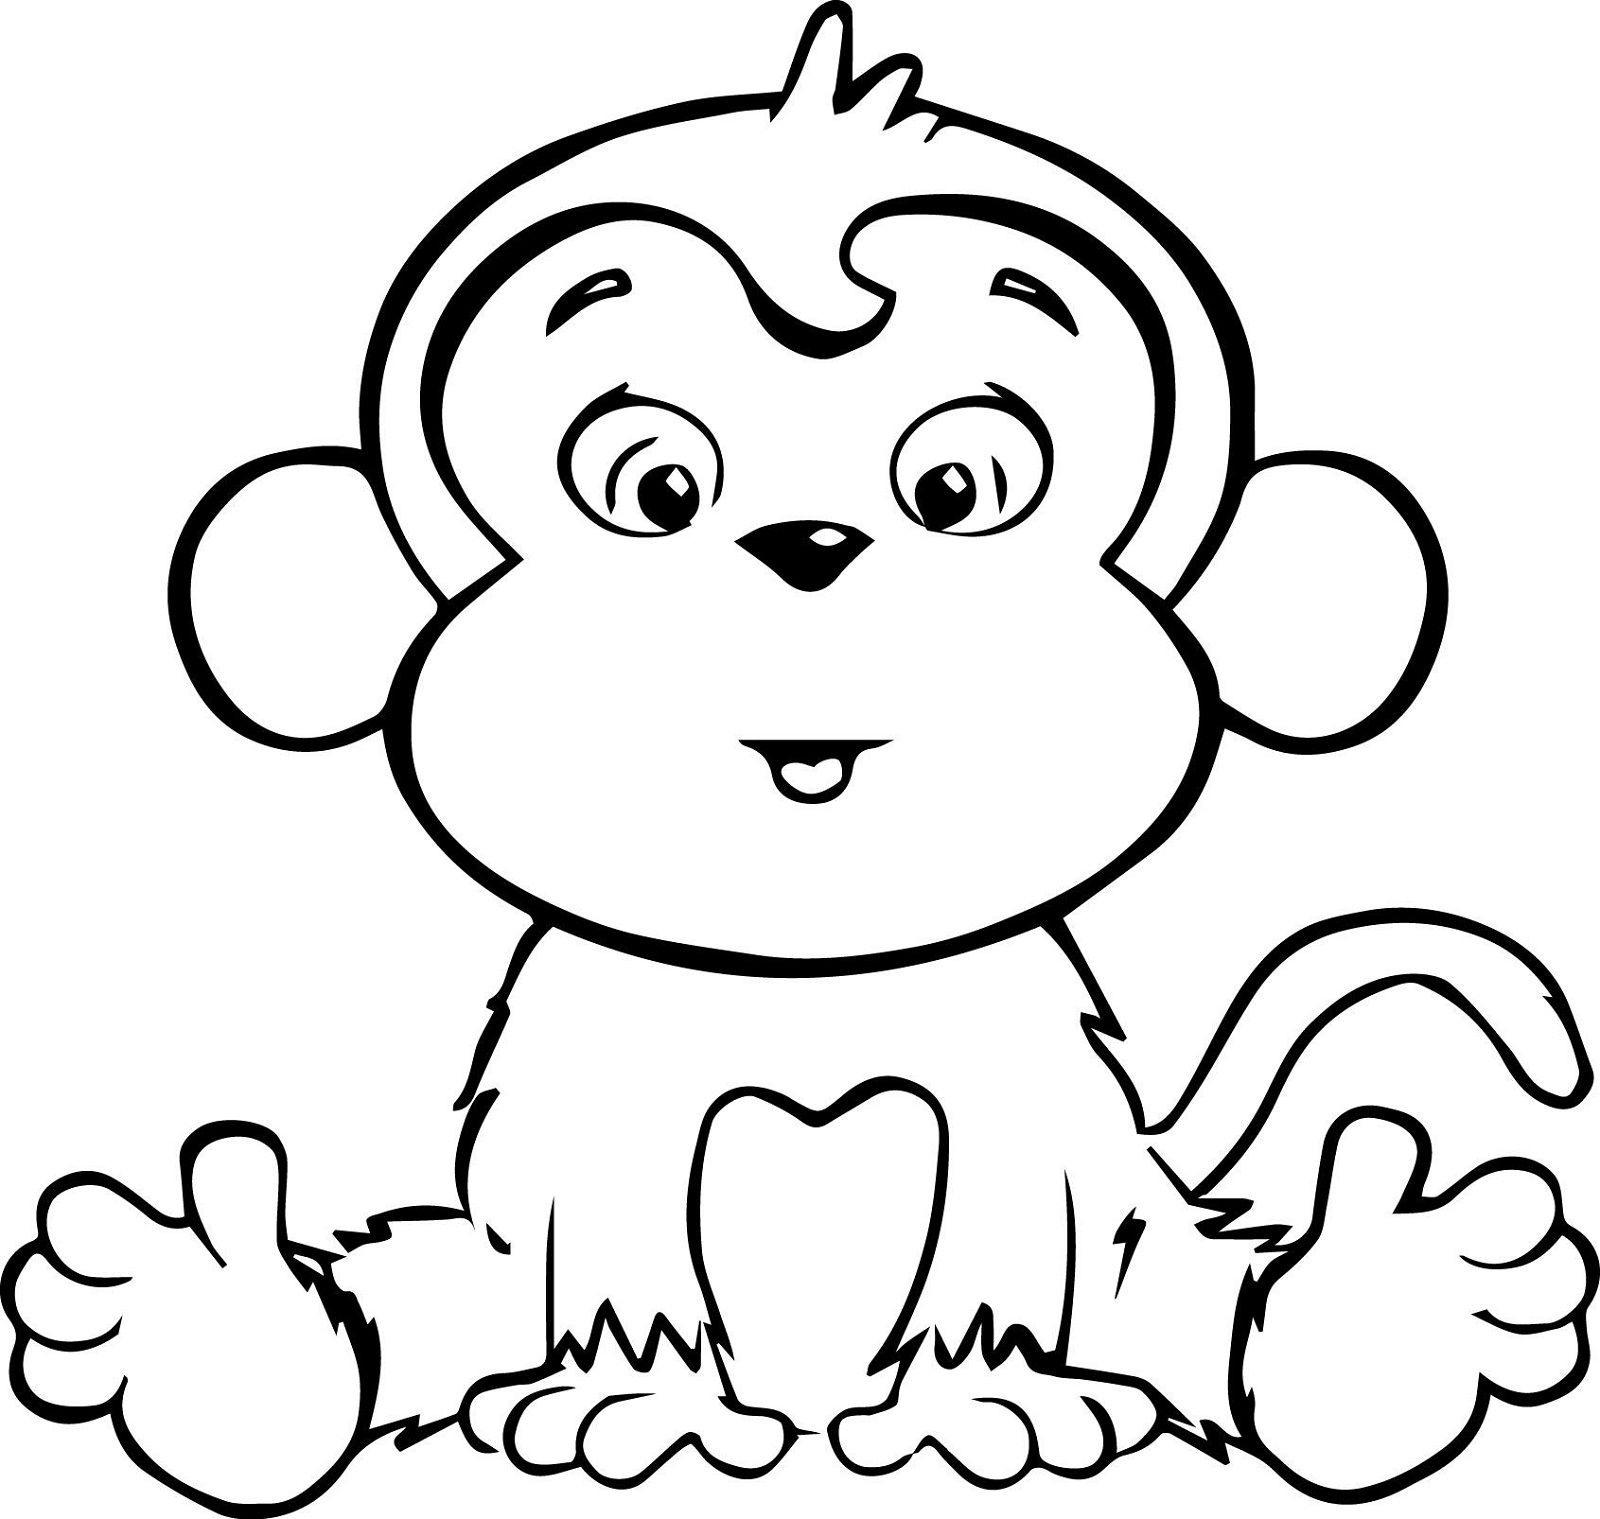 Monkeys Coloring Pages Worksheets Loving Printable